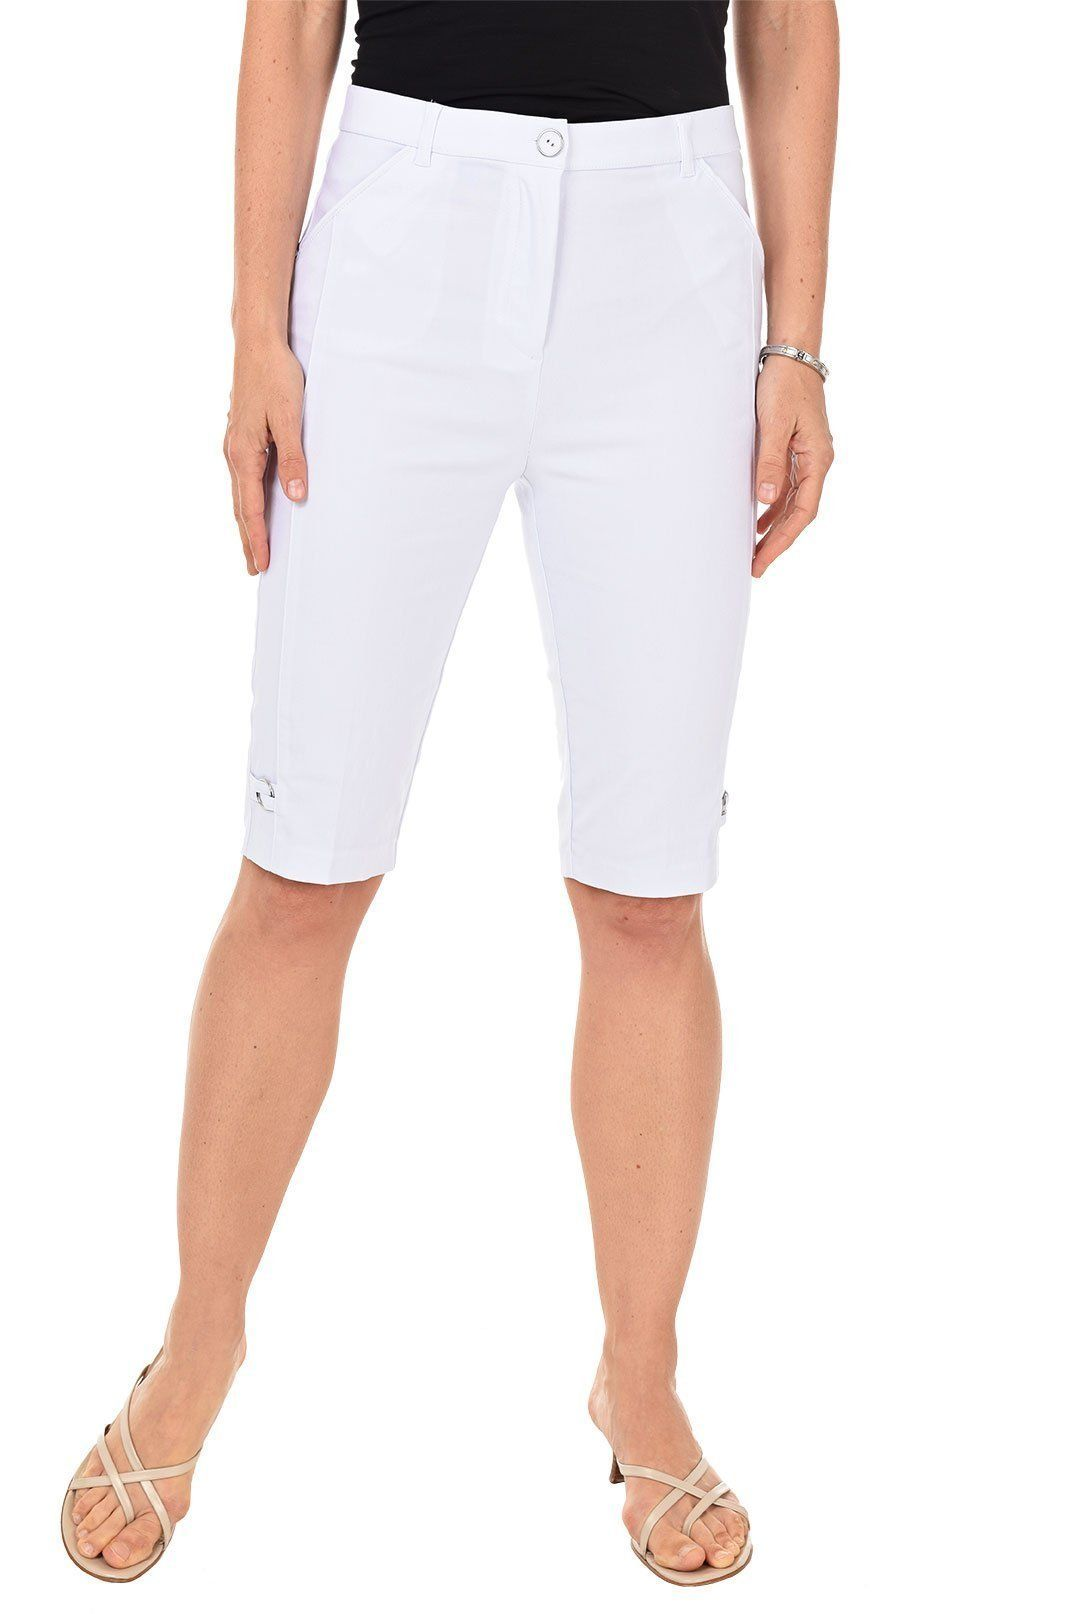 Coconut Shorts By Definition Of Resort These Bermuda Are Row The FKl1cJT3